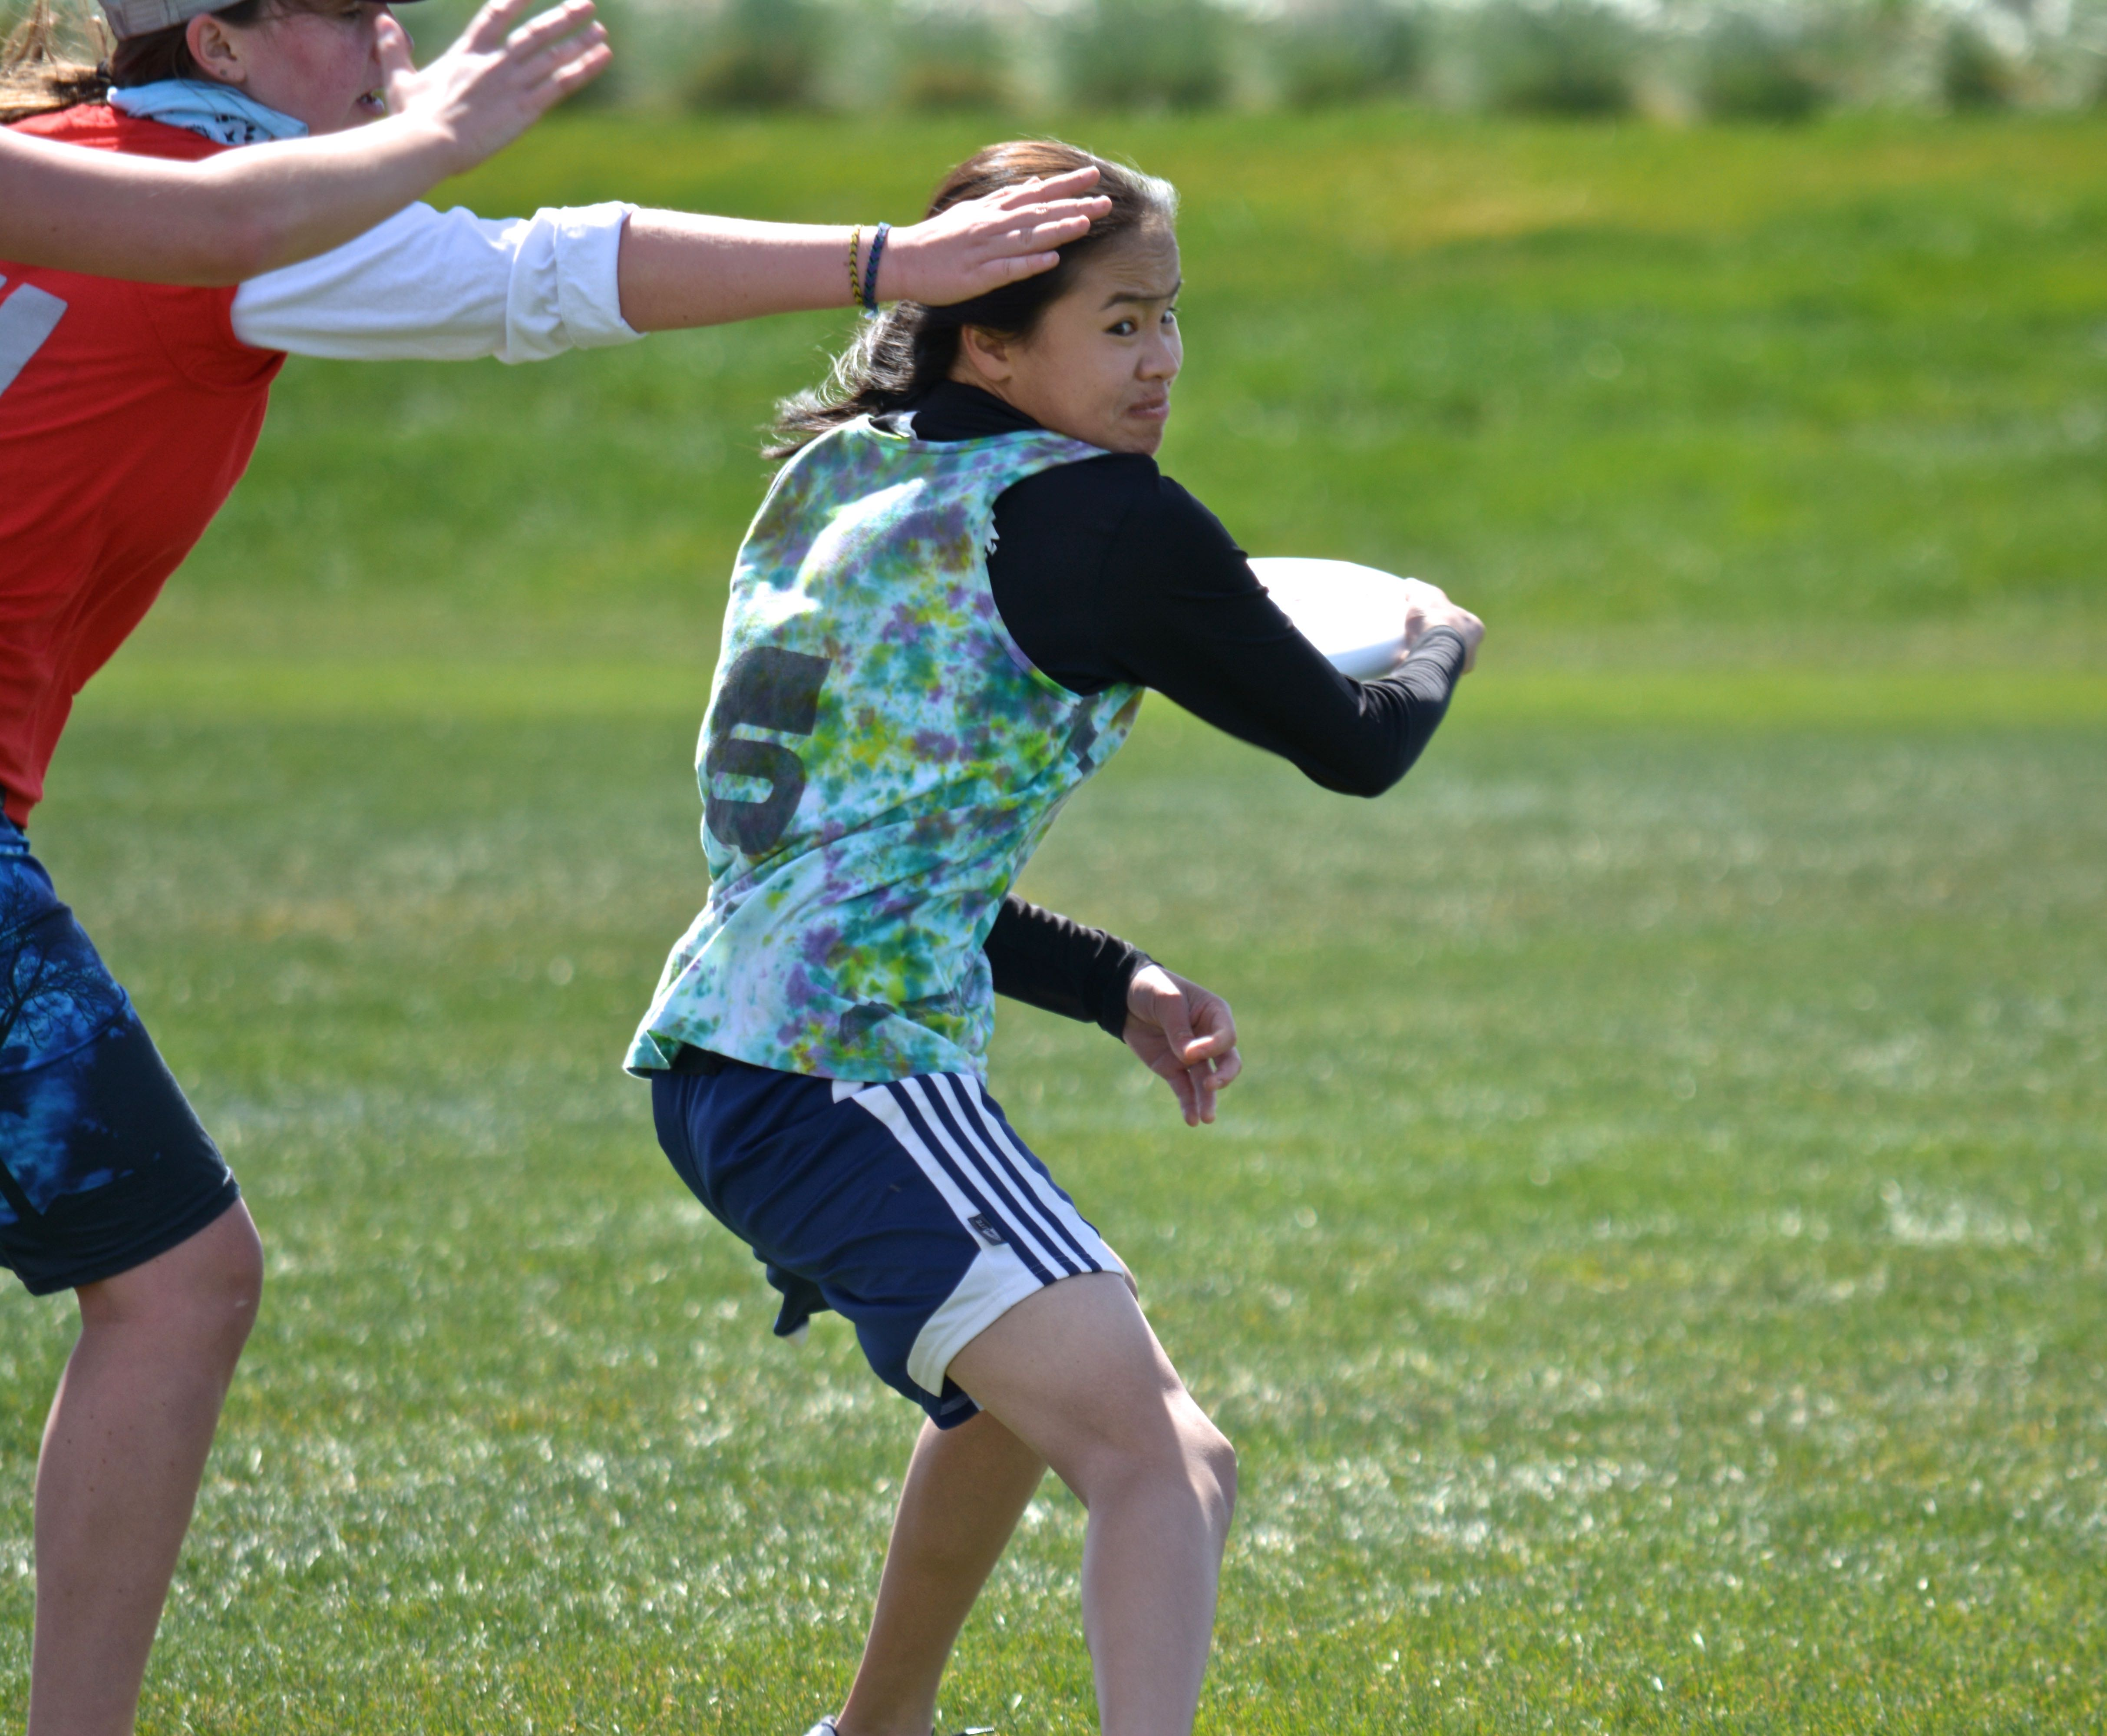 Senior and captain Kiera Lindgren works the disk upwind in the girls' final game